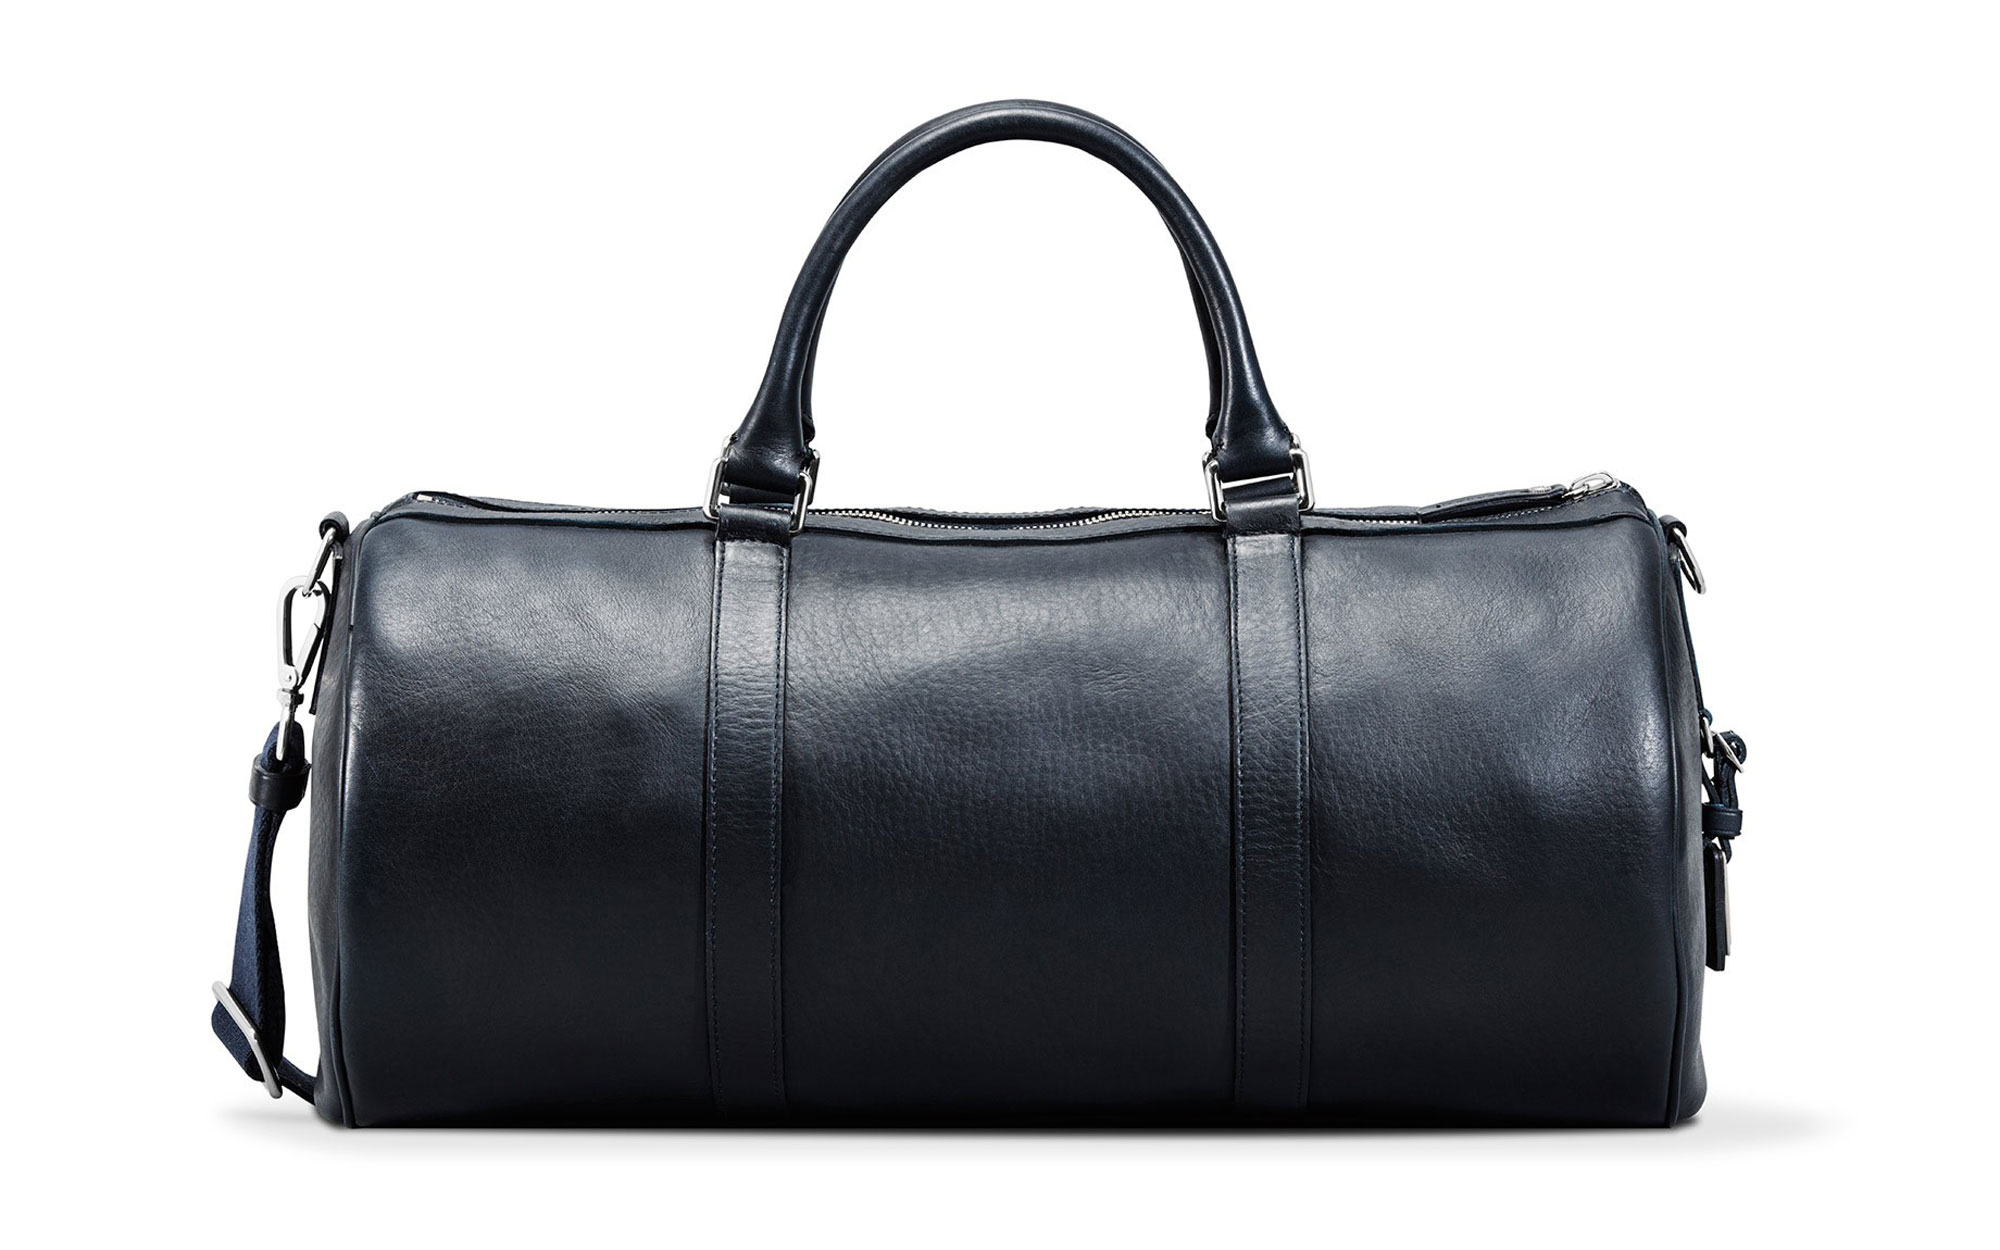 Shinola Duffel Bag